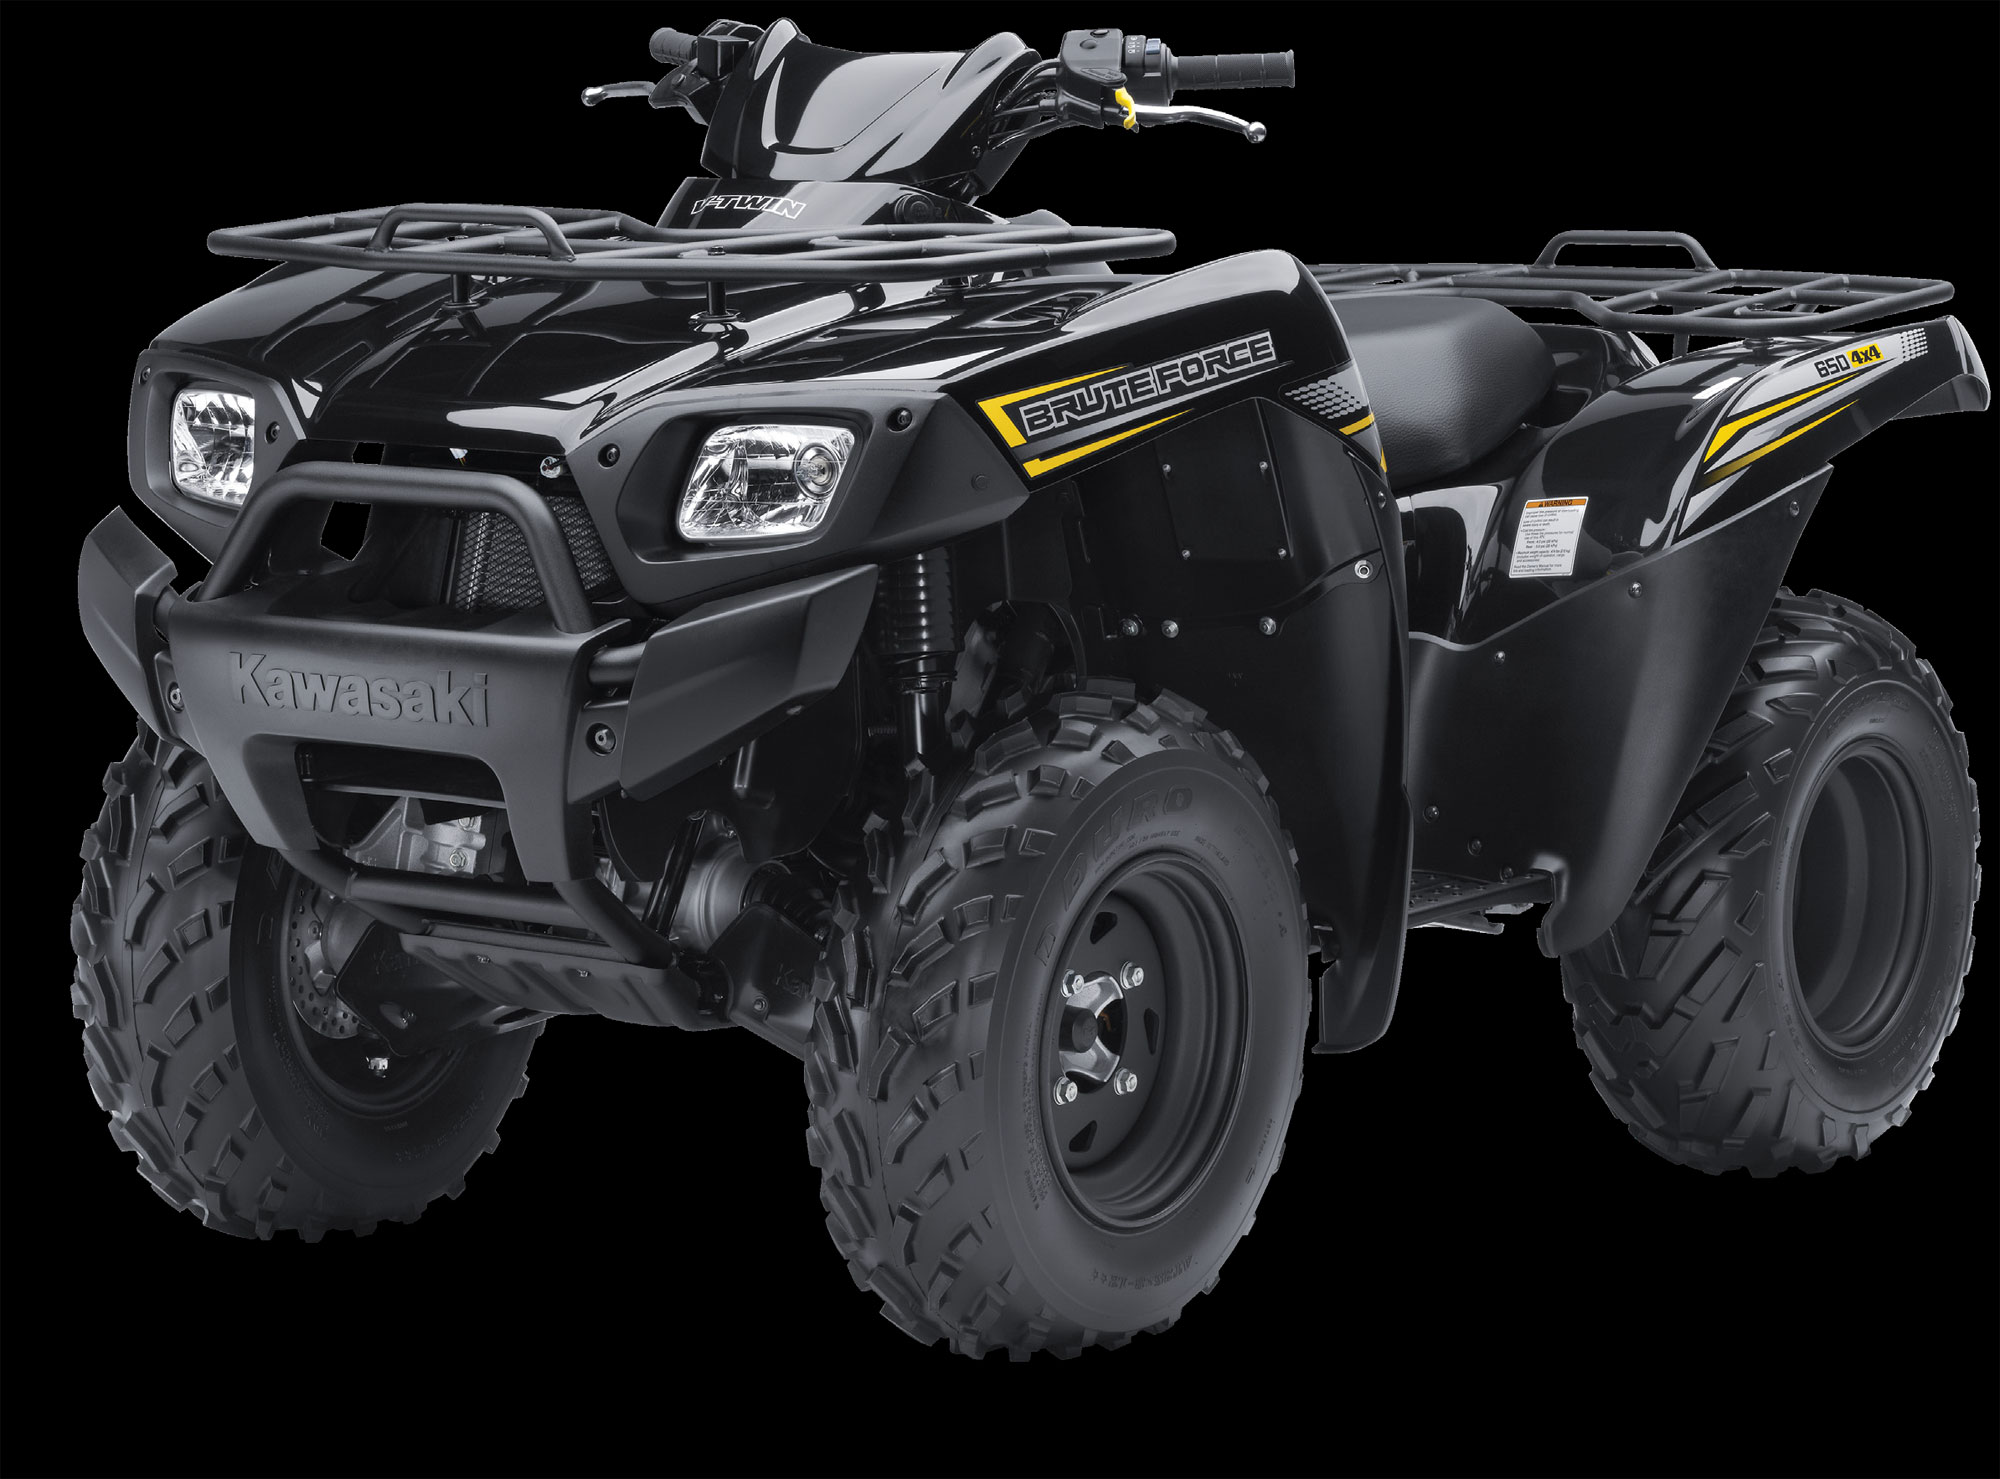 Kawasaki Brute Force 650 4x4 2011 images #86180